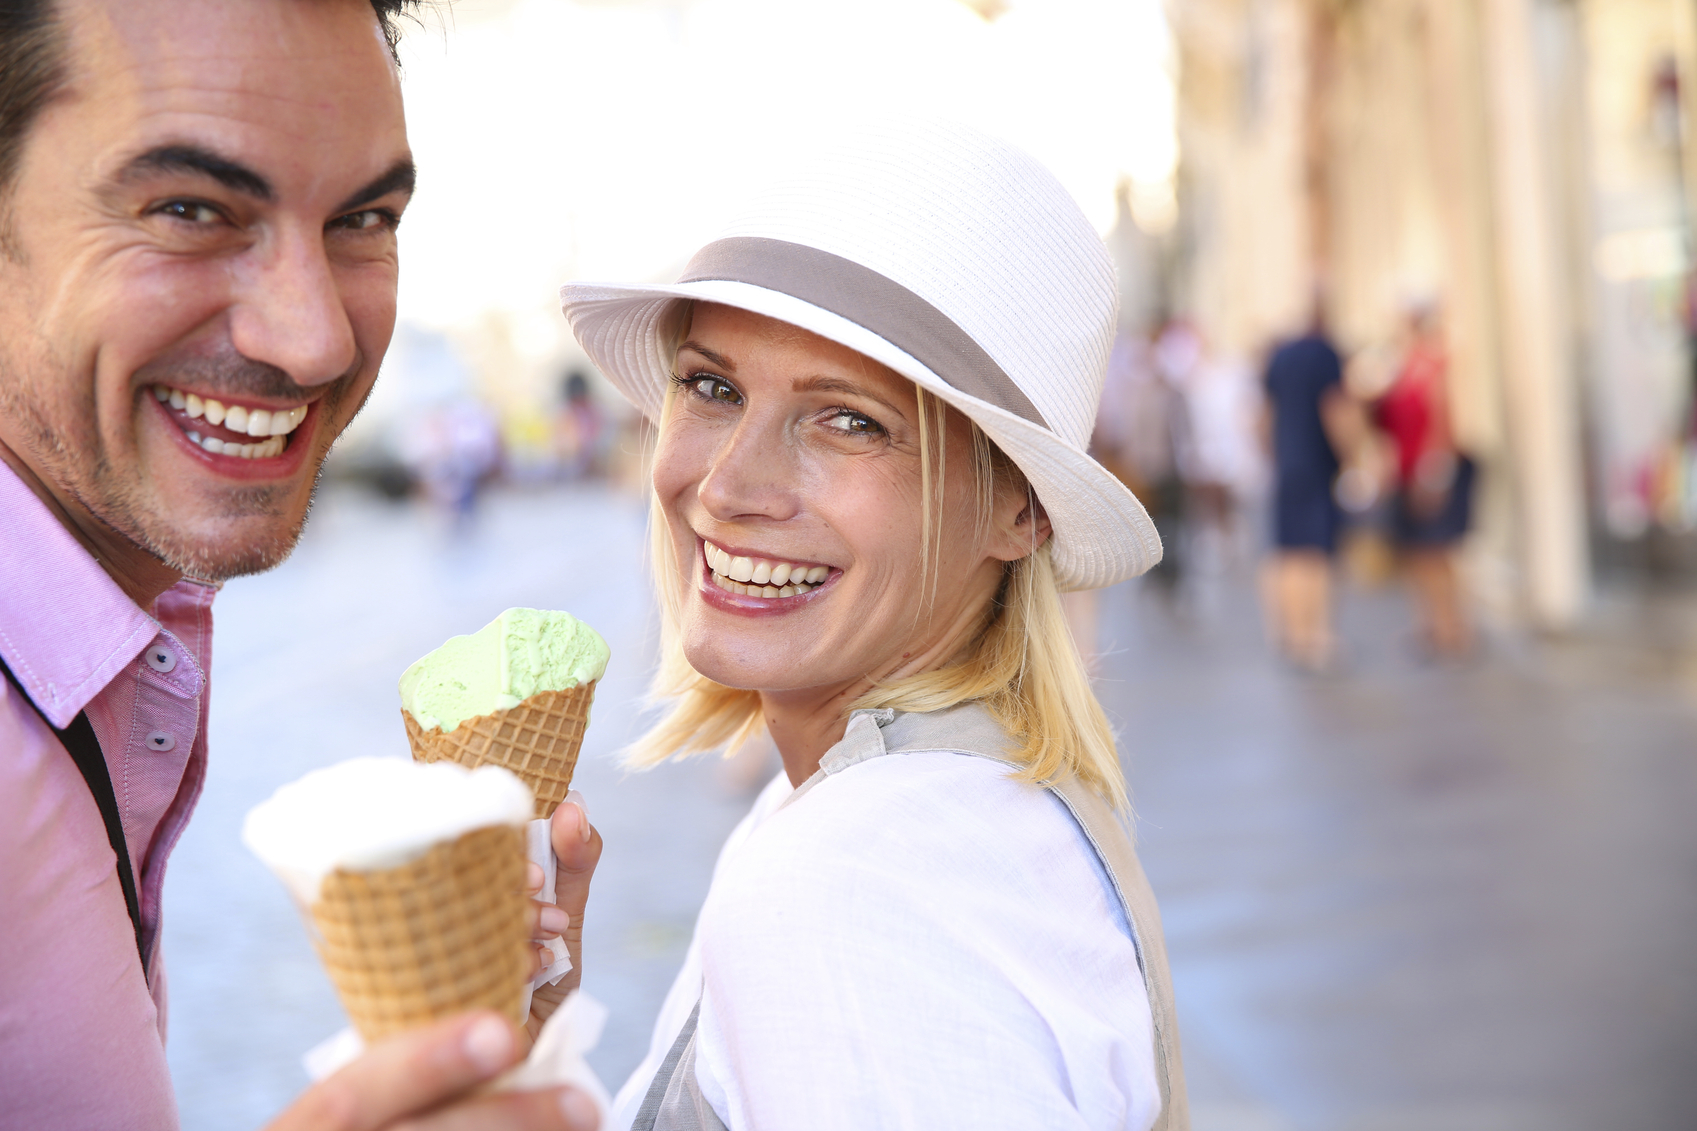 Tourists in a street of Rome eating ice cream